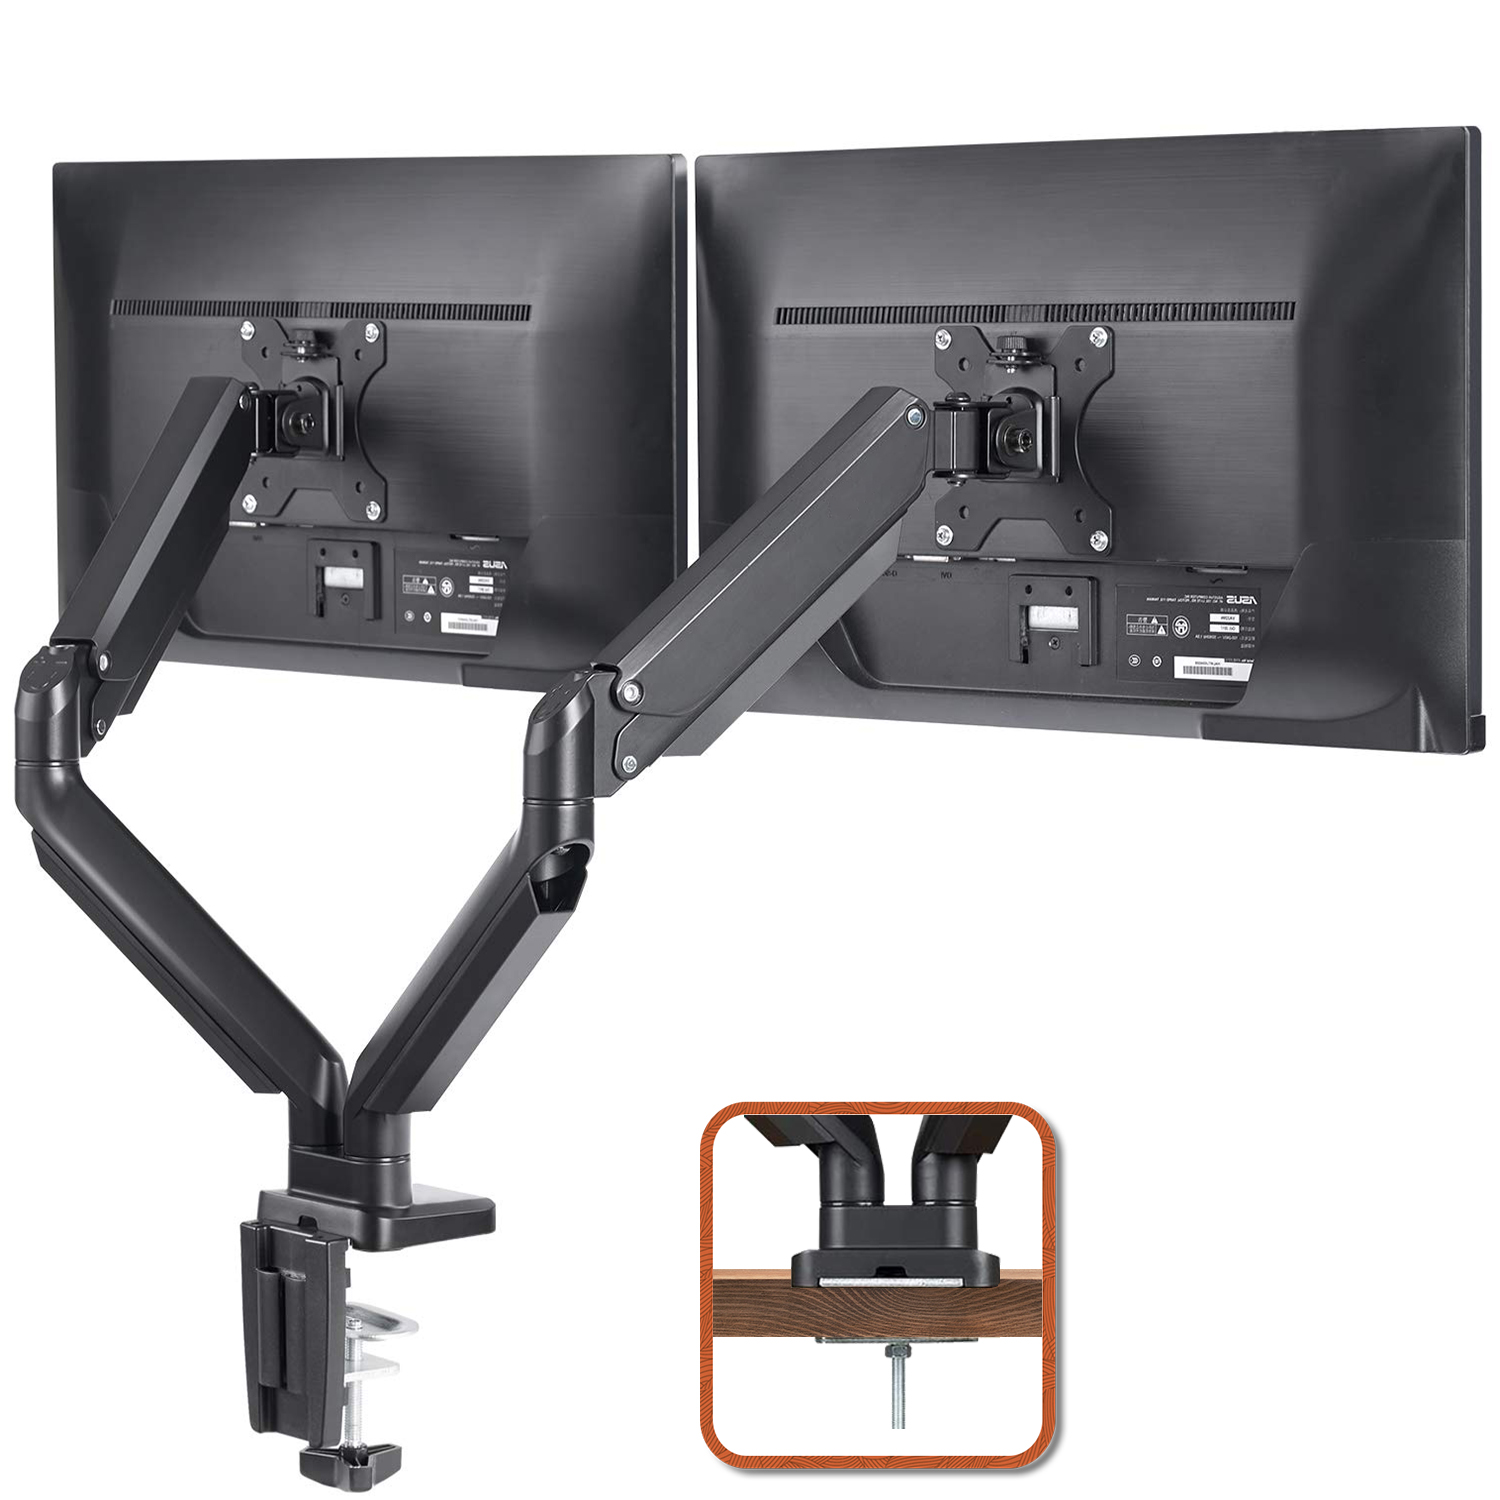 """(EU EXCLUSIVE)PUTORSEN® PC Dual Monitor Arm - Aluminum Ergonomic Height-Assisted Full Motion Heavy Duty Double Arm Desktop Clamp Mount for 17–32"""" Screens Adjustable Tilt Swivel VESA 75 to 100mm Weight up to 8kg"""